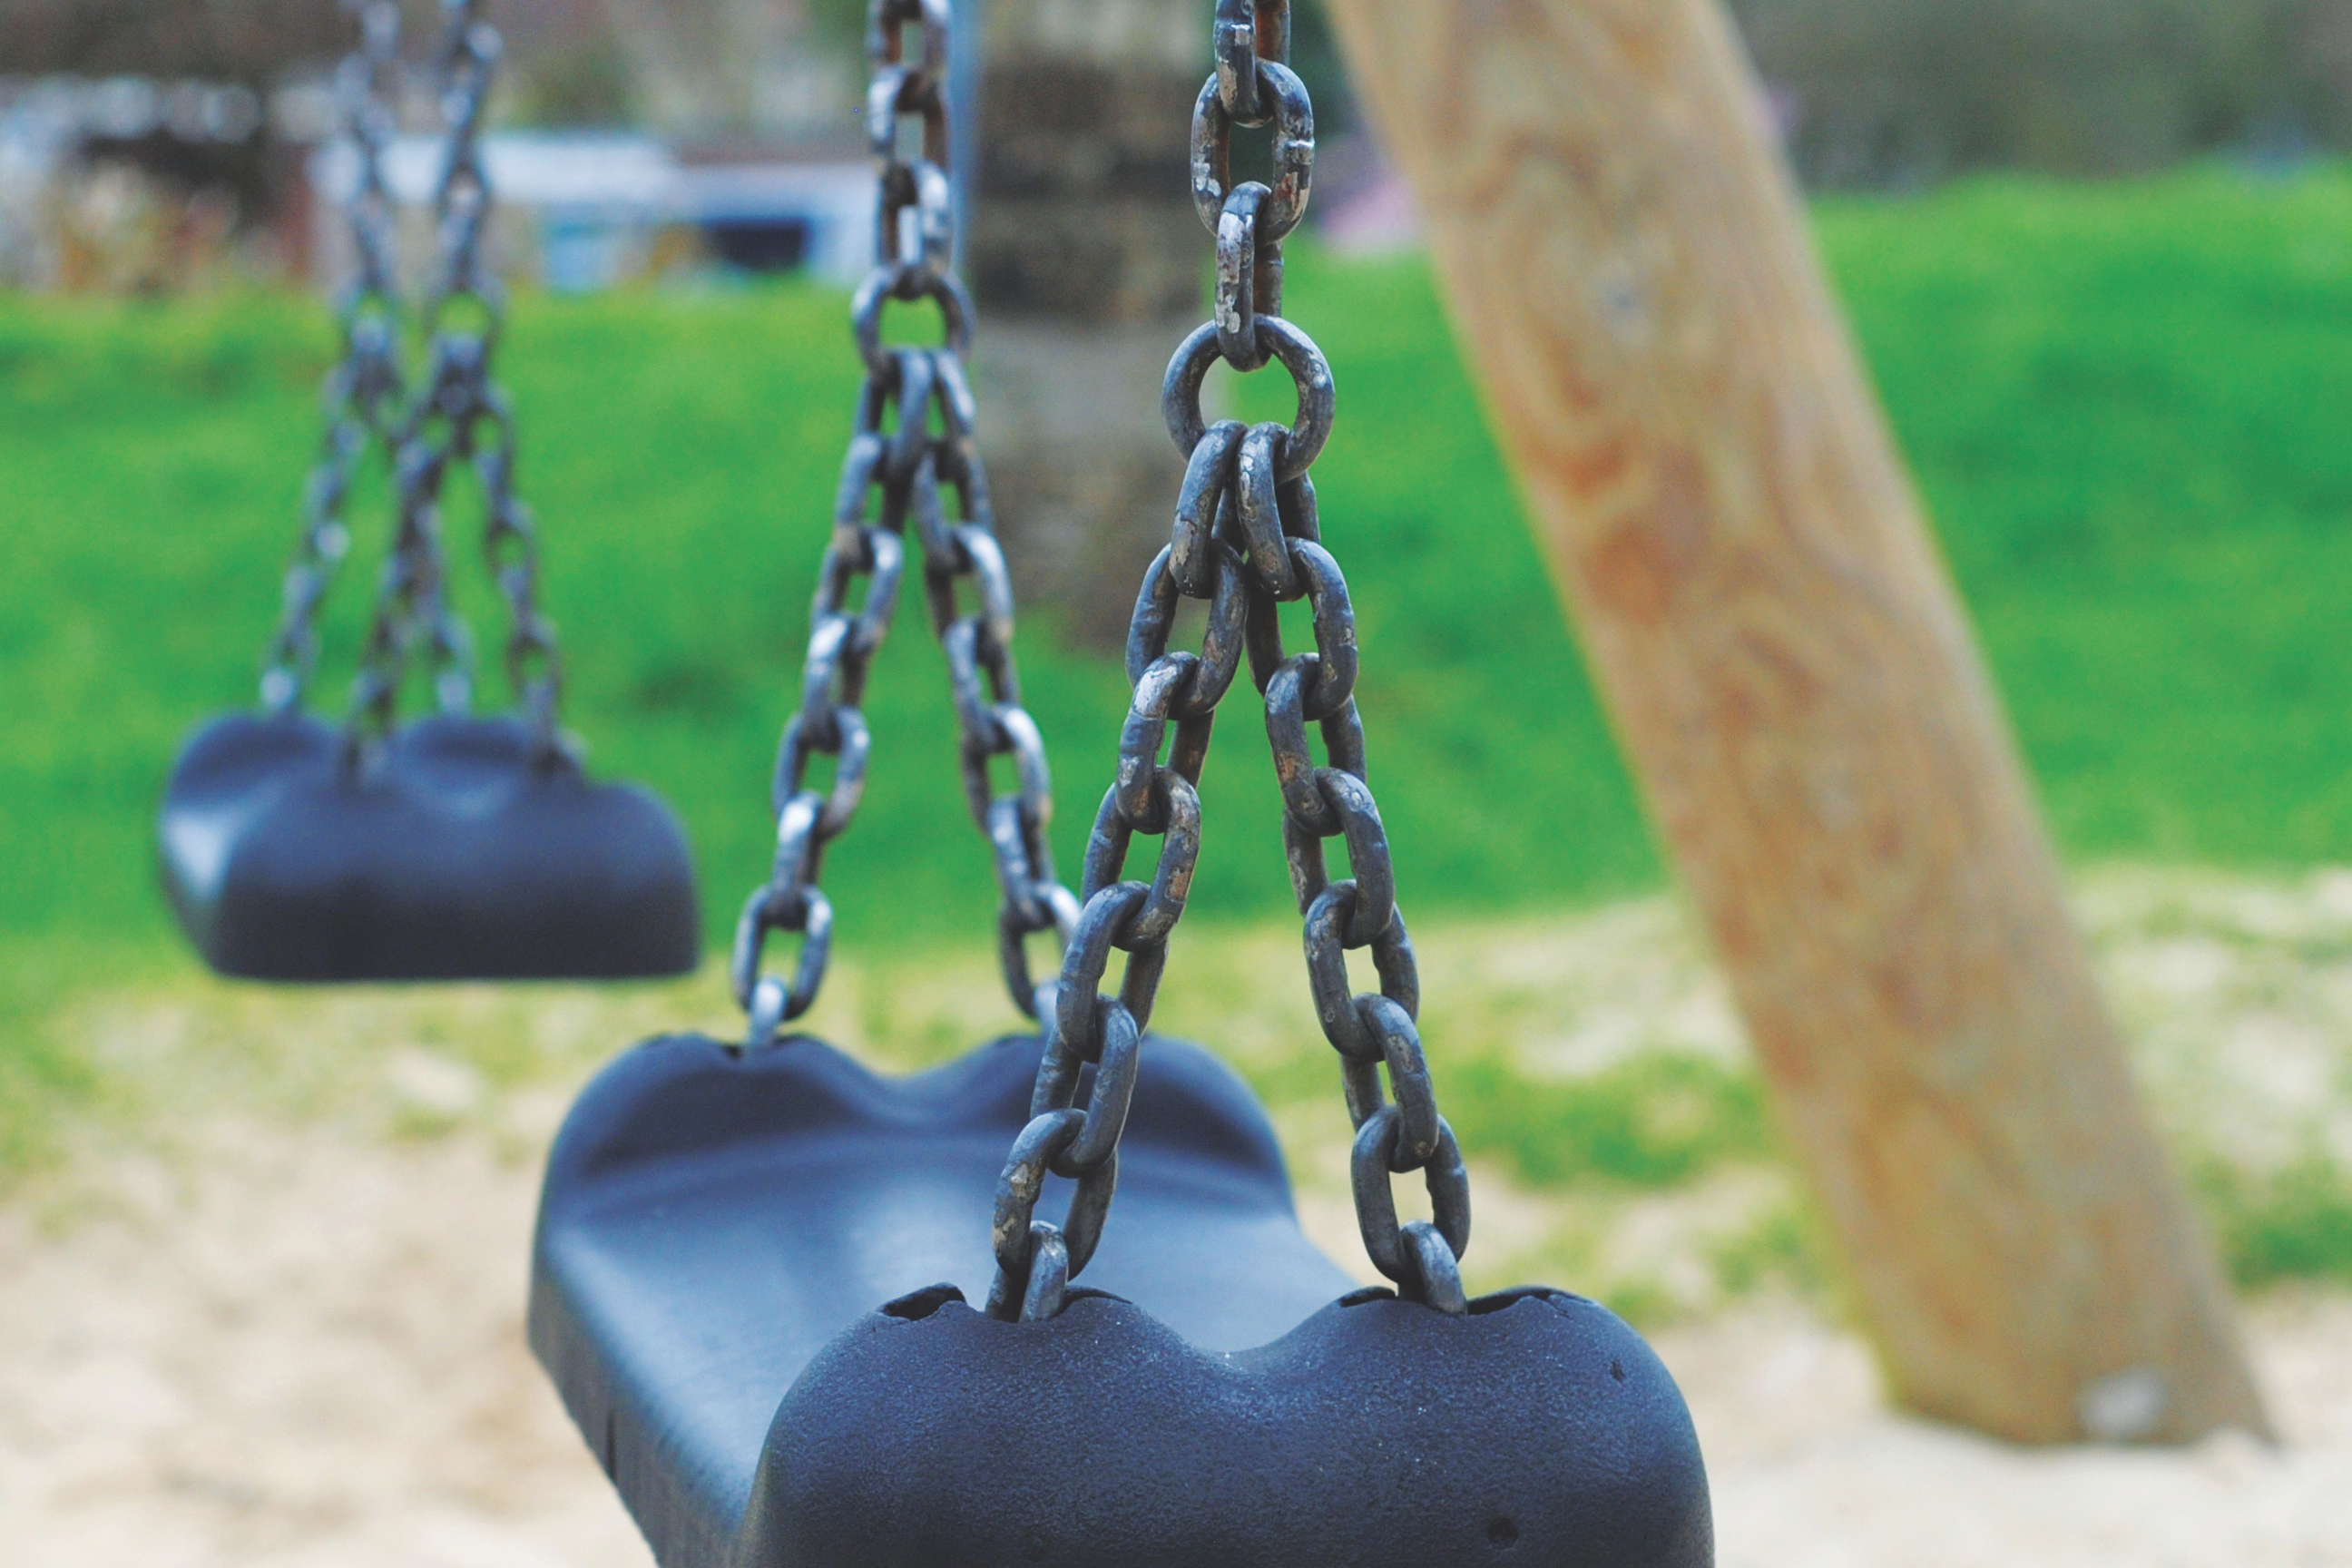 Empty swings at park